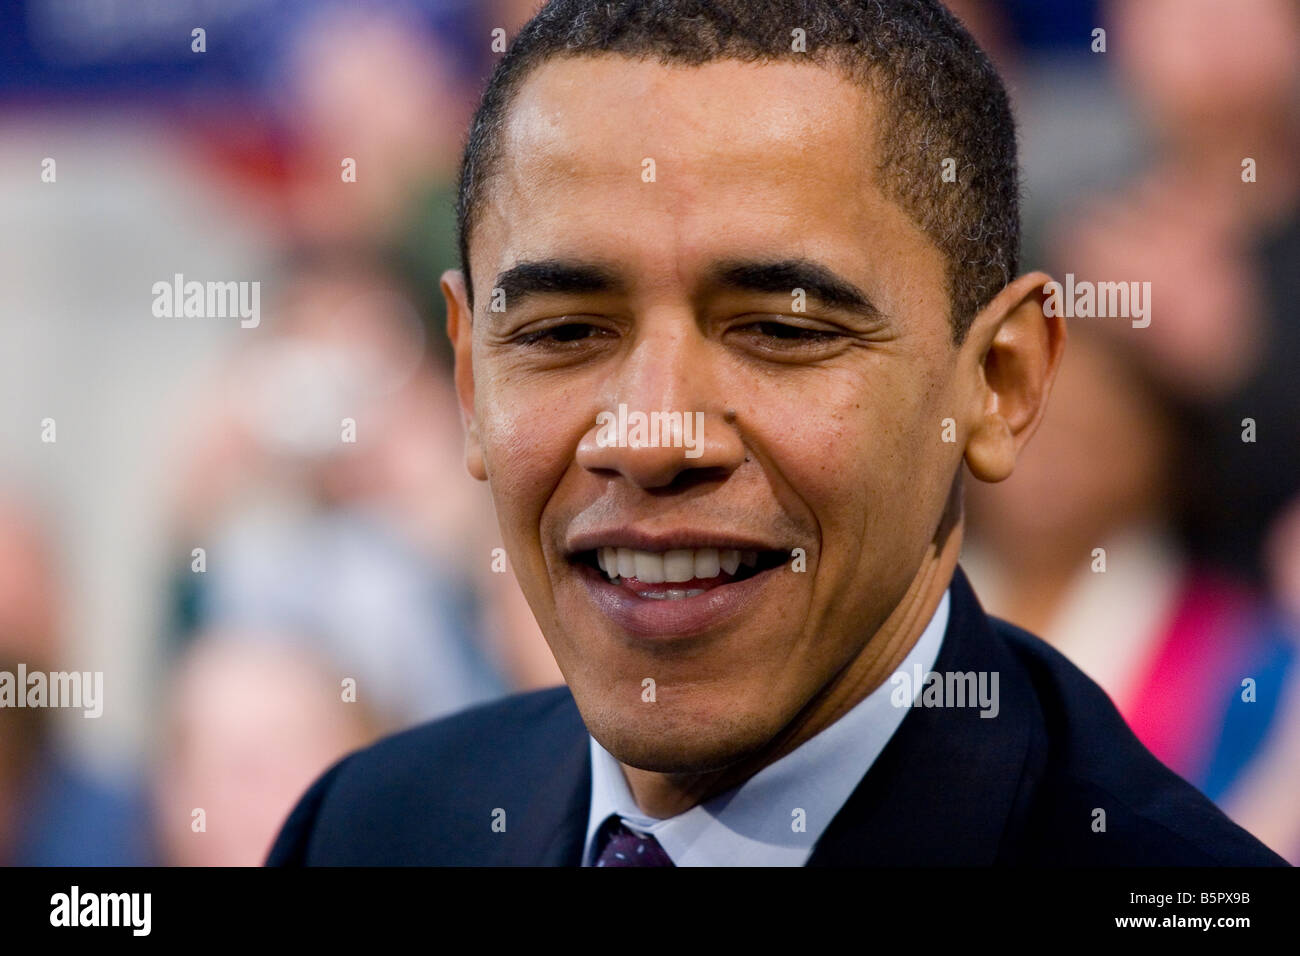 Barack Obama campaigning for office of United States President 2008 - Stock Image